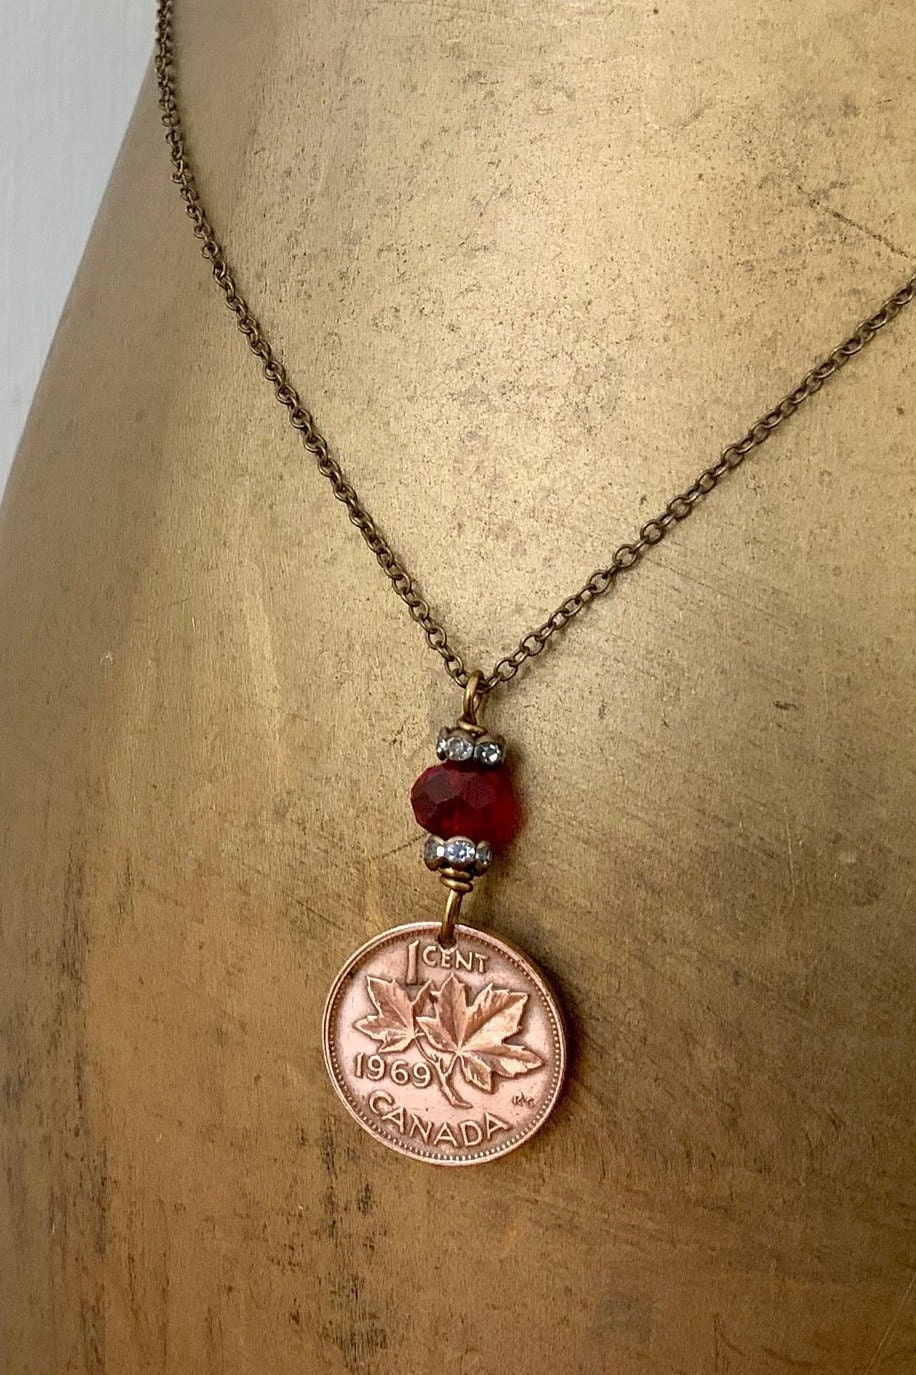 Canadian Coin Necklace 1969 Or 1970 One Cent Pendant Maple Leaf Penny Canada 50th Birthday